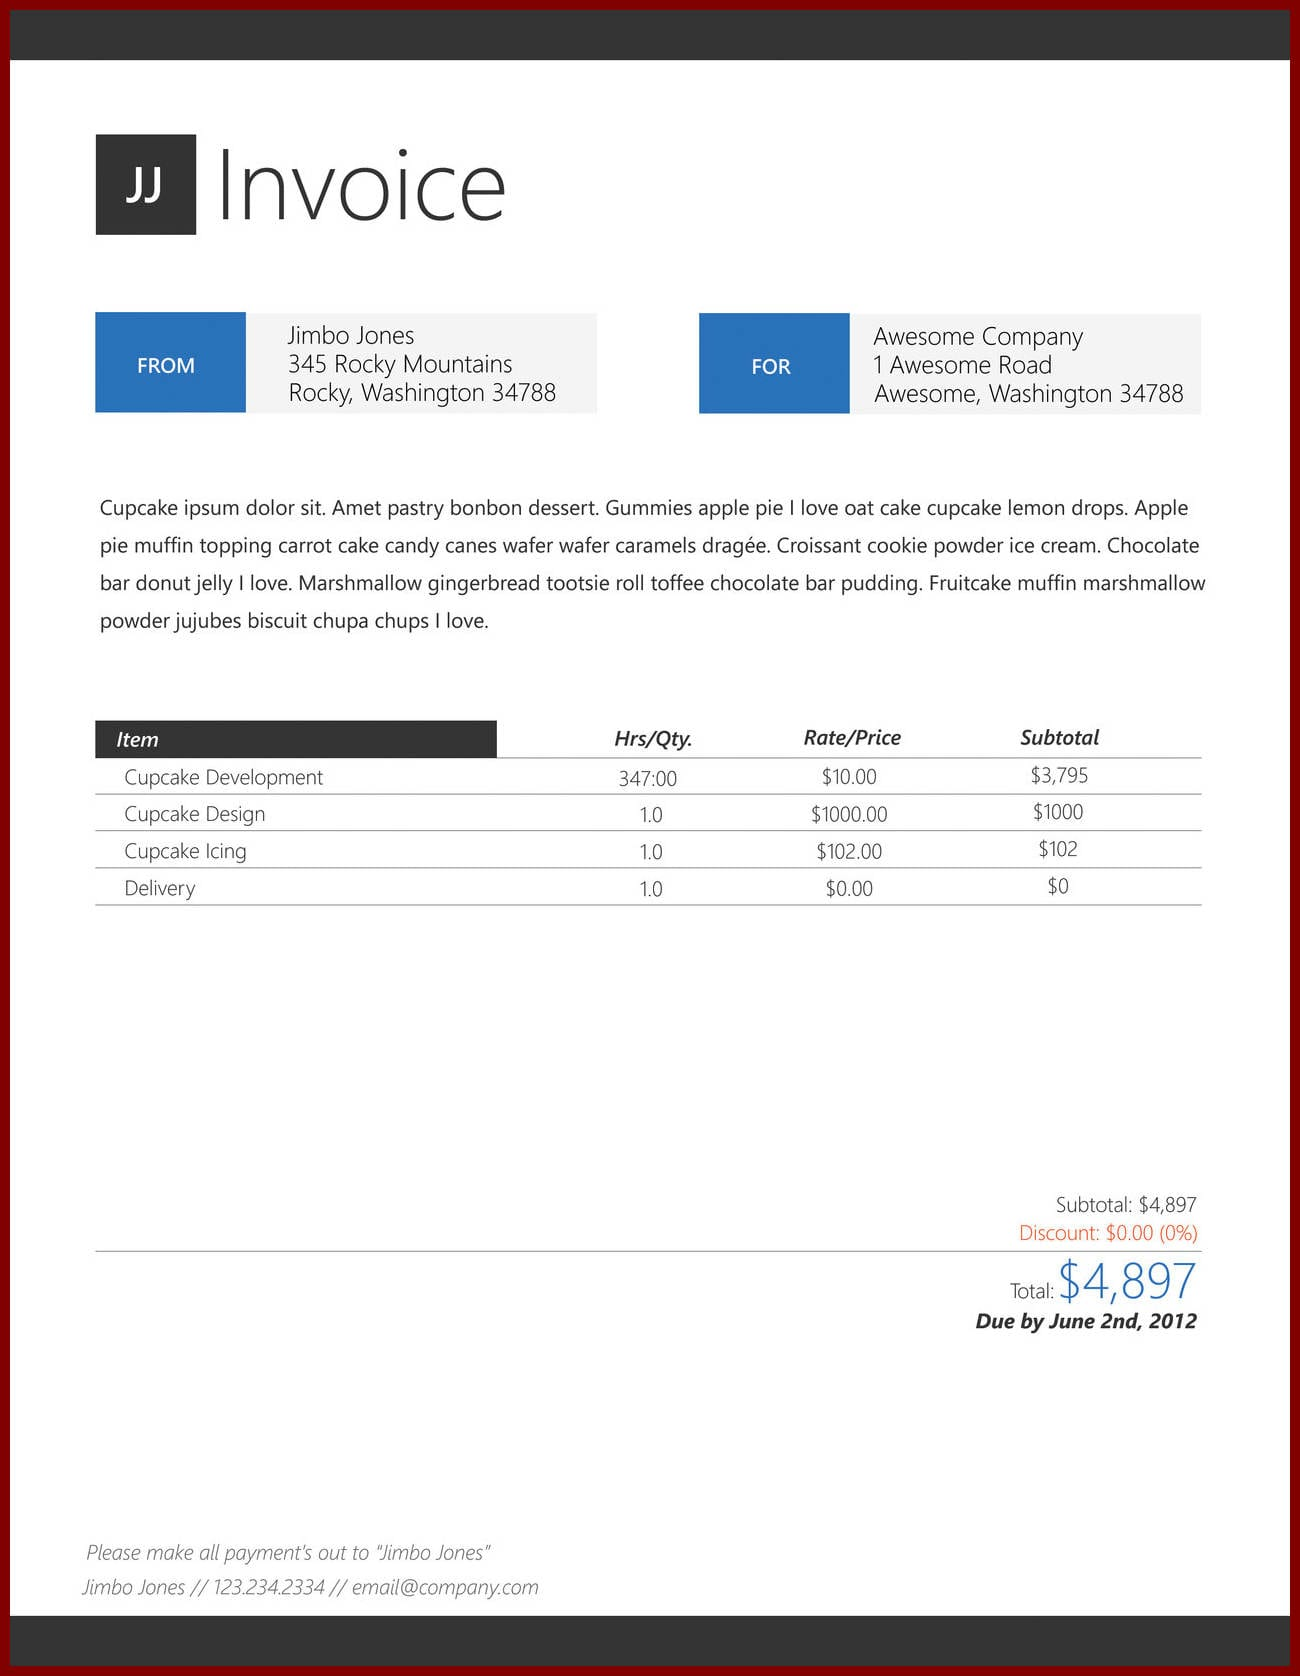 Invoice Template Open Office Invoice Template Google Docs Spreadsheet Templates for Busines Spreadsheet Templates for Busines Invoice Template Google Docs